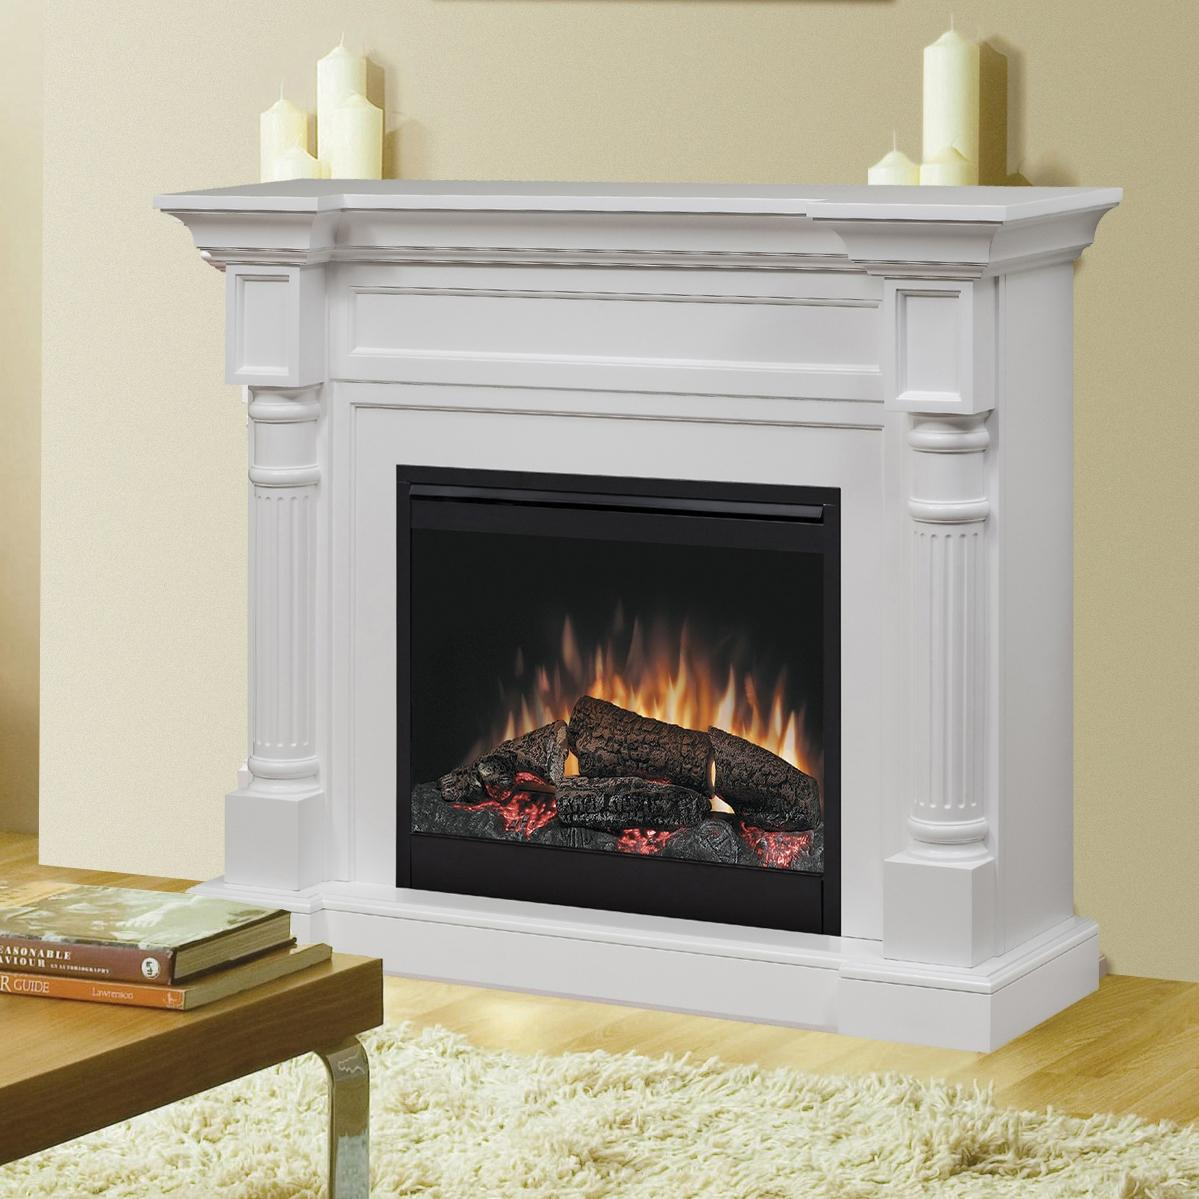 52 inch dimplex electric fireplaces with white mantel kit before the white wall matched with wooden floor with white rug and table for family room decor ideas